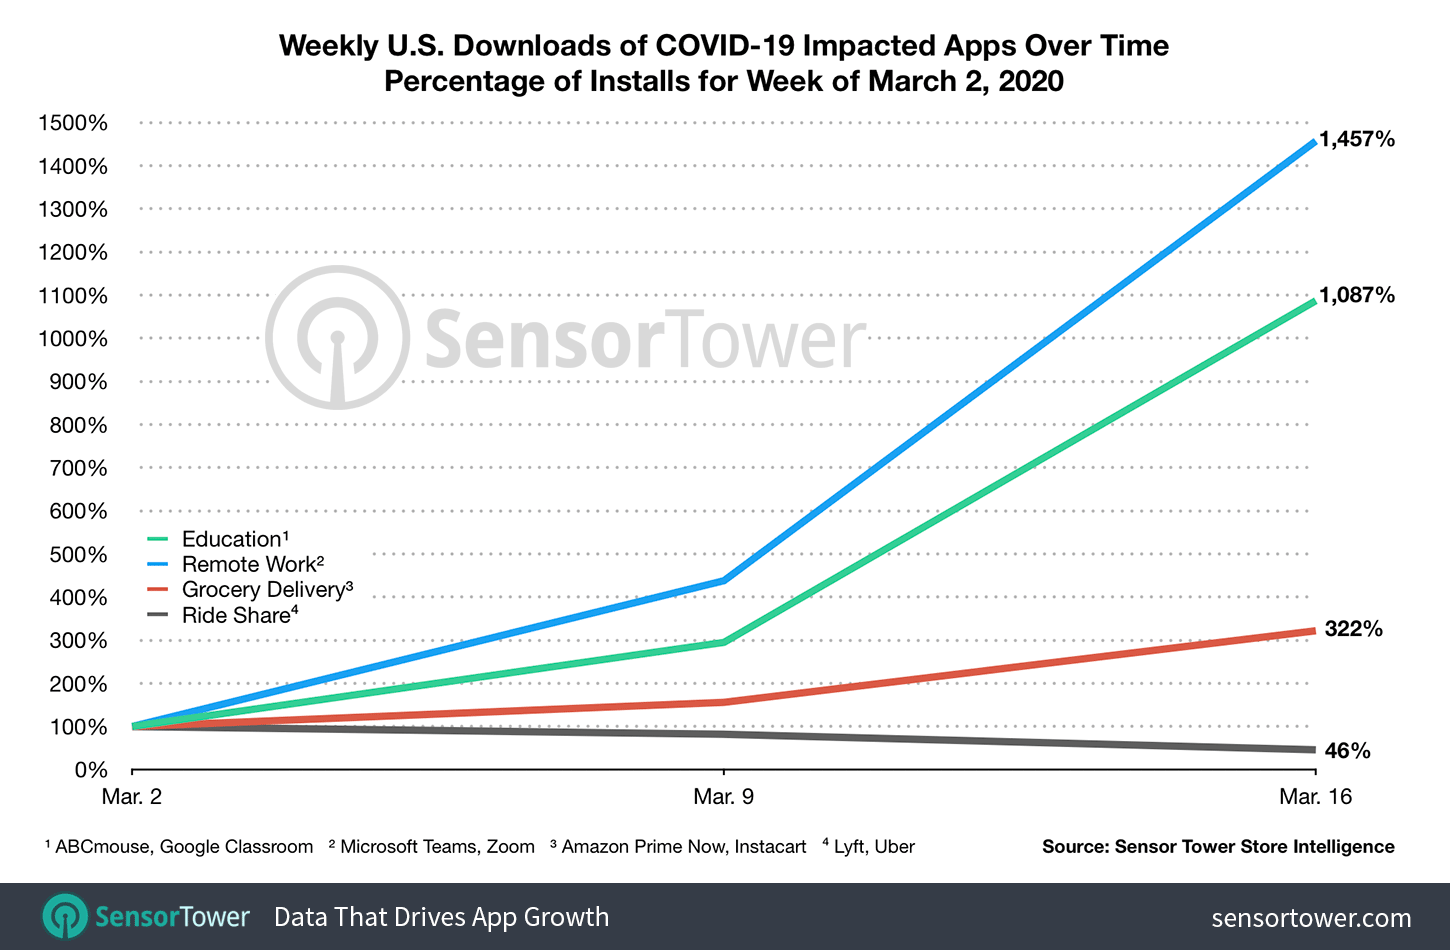 Weekly U.S. Downloads of COVID-19 Impacted Apps Over Time